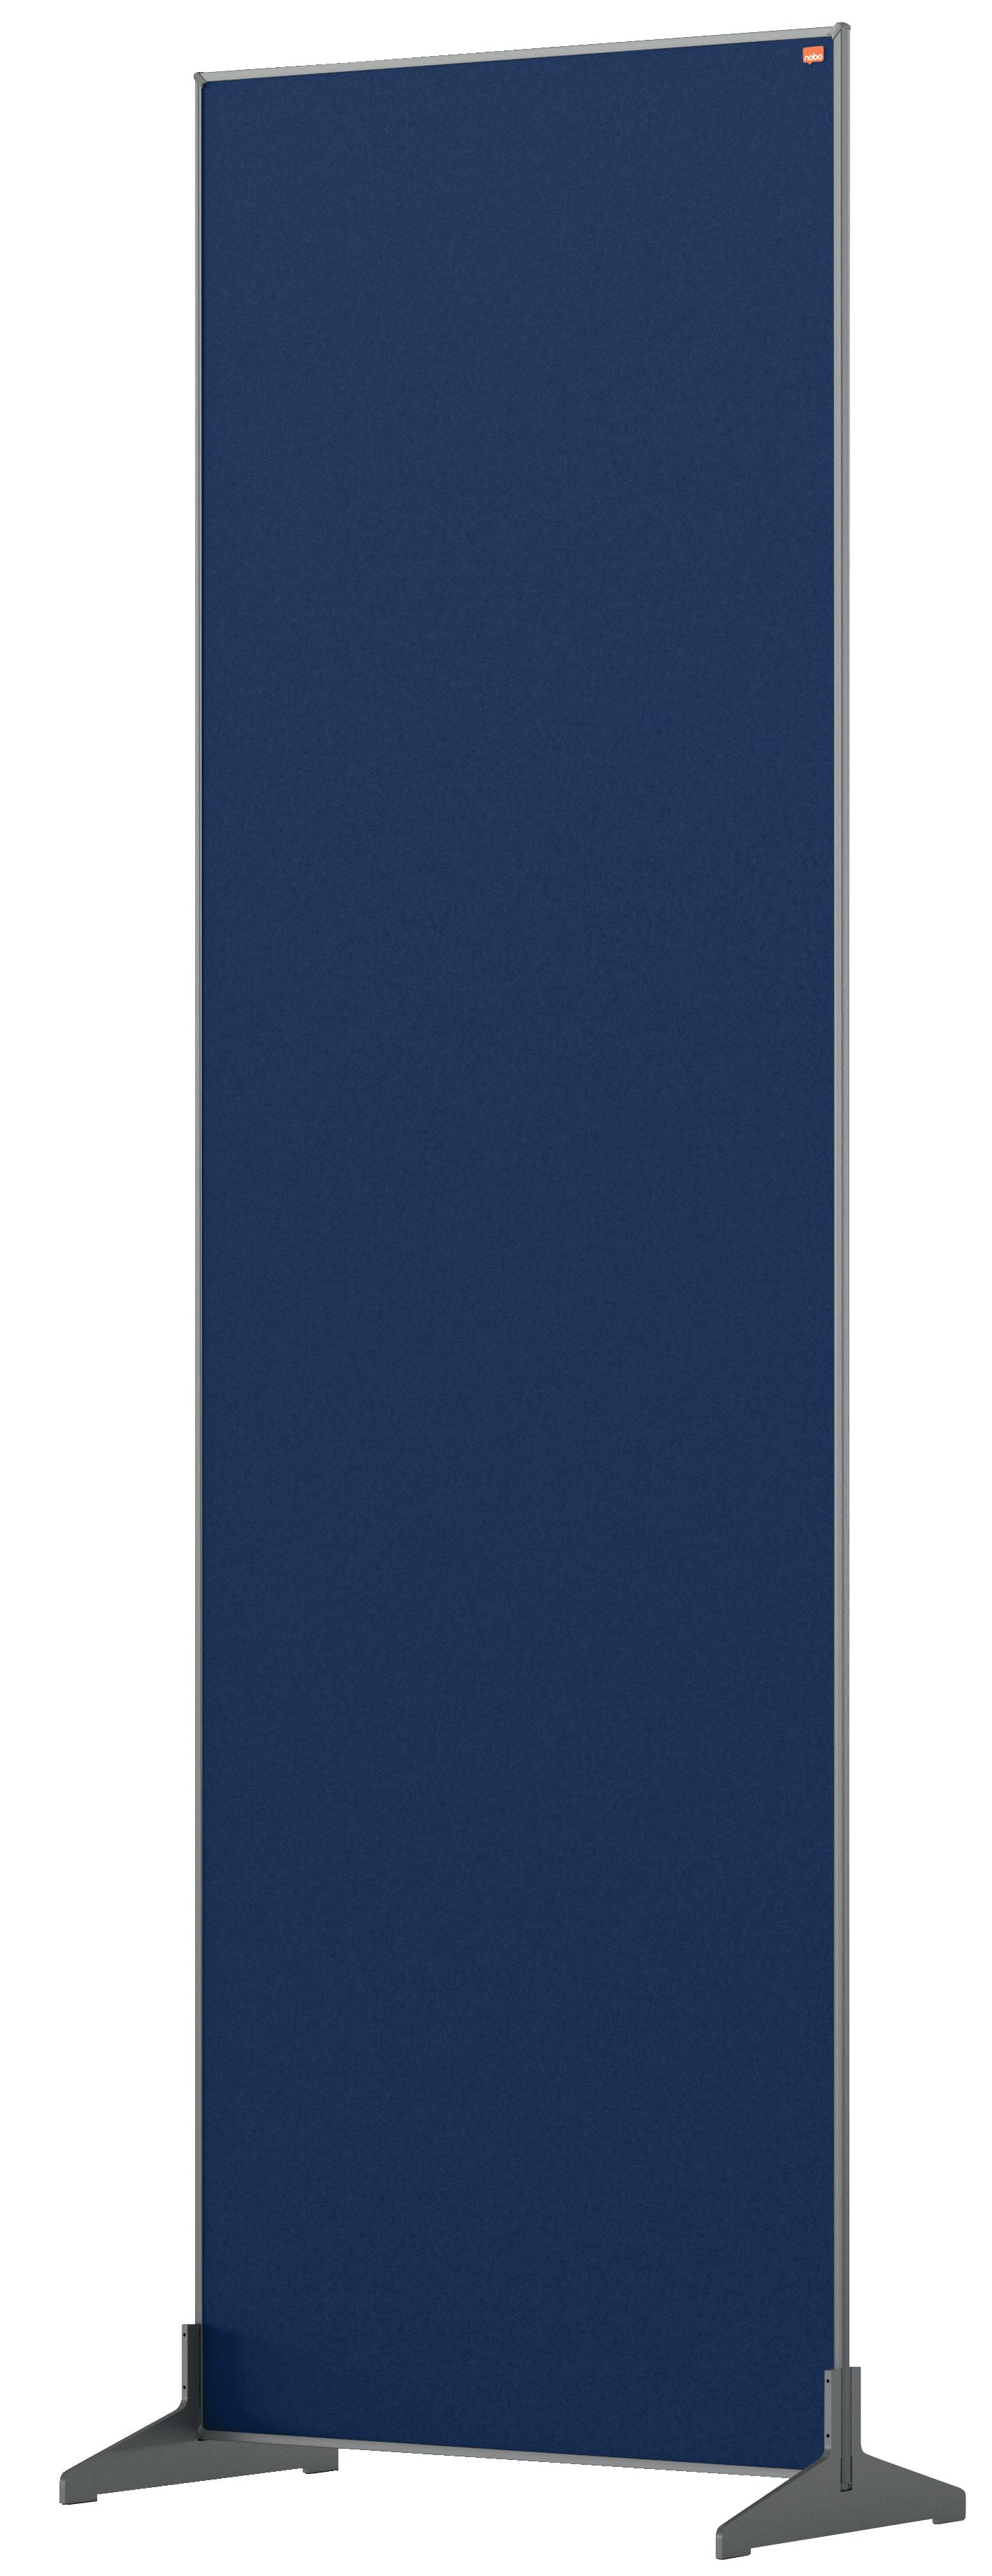 Straight Tops Nobo Impression Pro Floor Divider 600x1800mm Blue